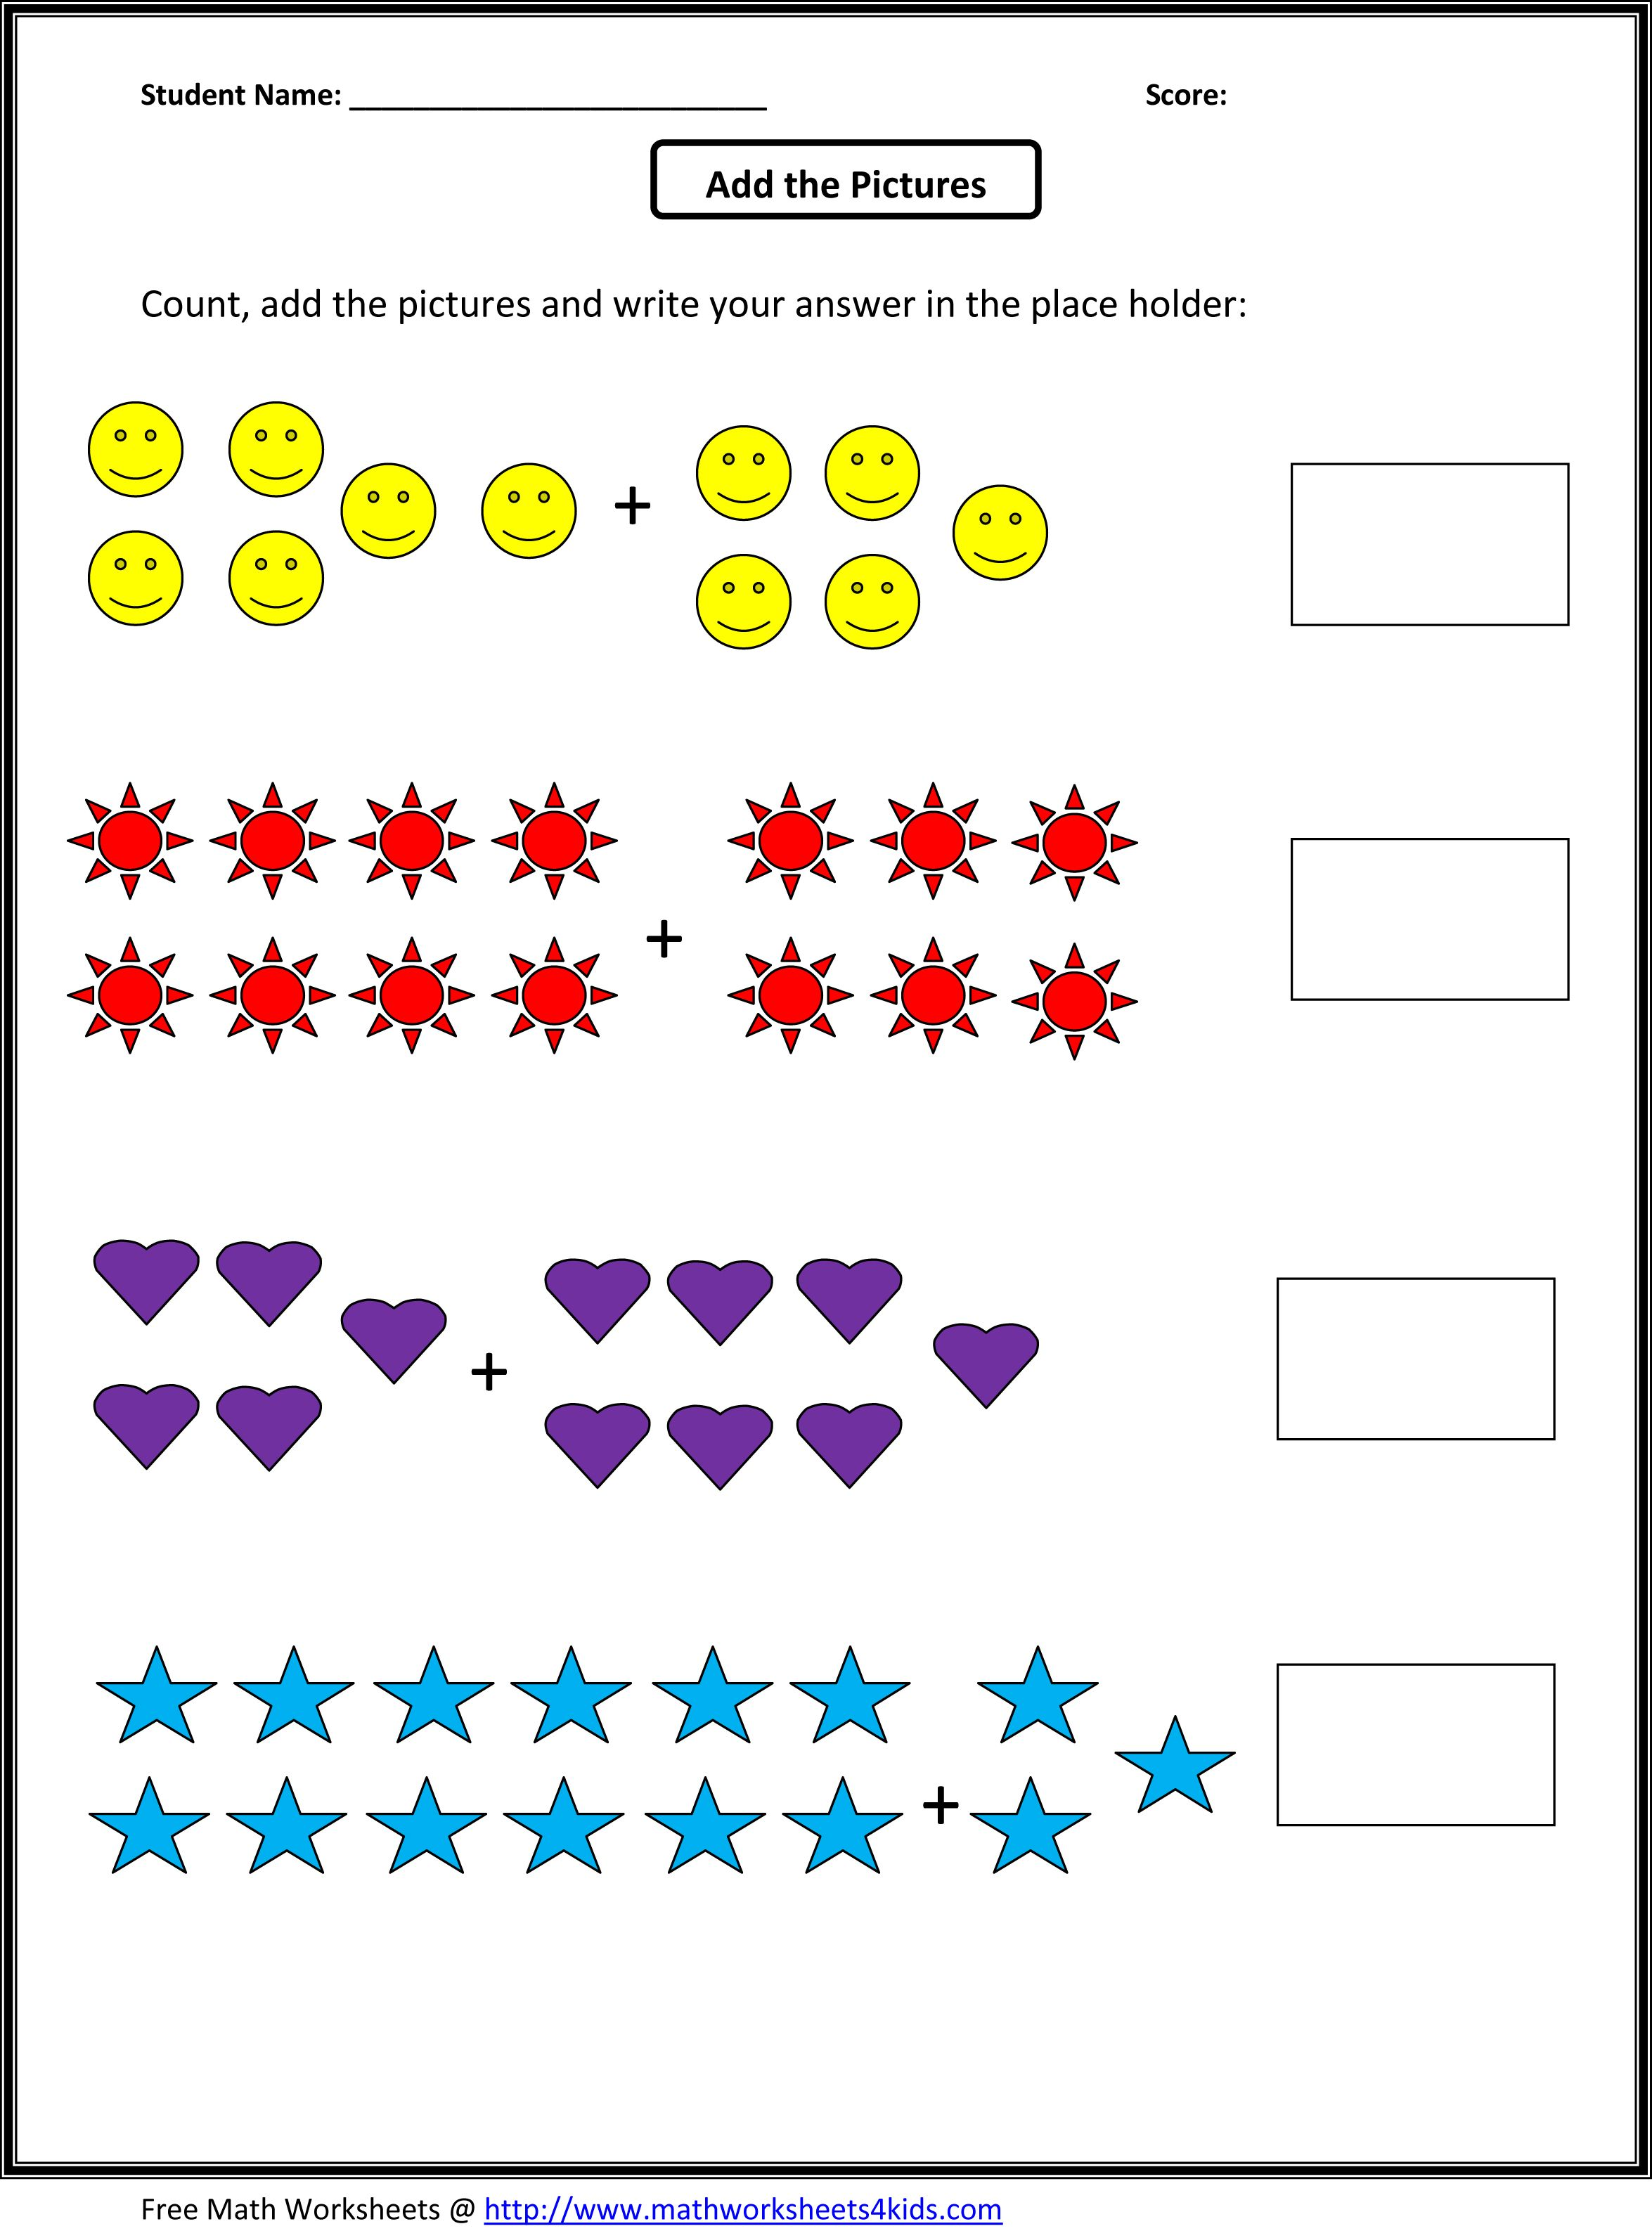 grade 1 addition math worksheets – Math Printable Worksheets for 1st Grade